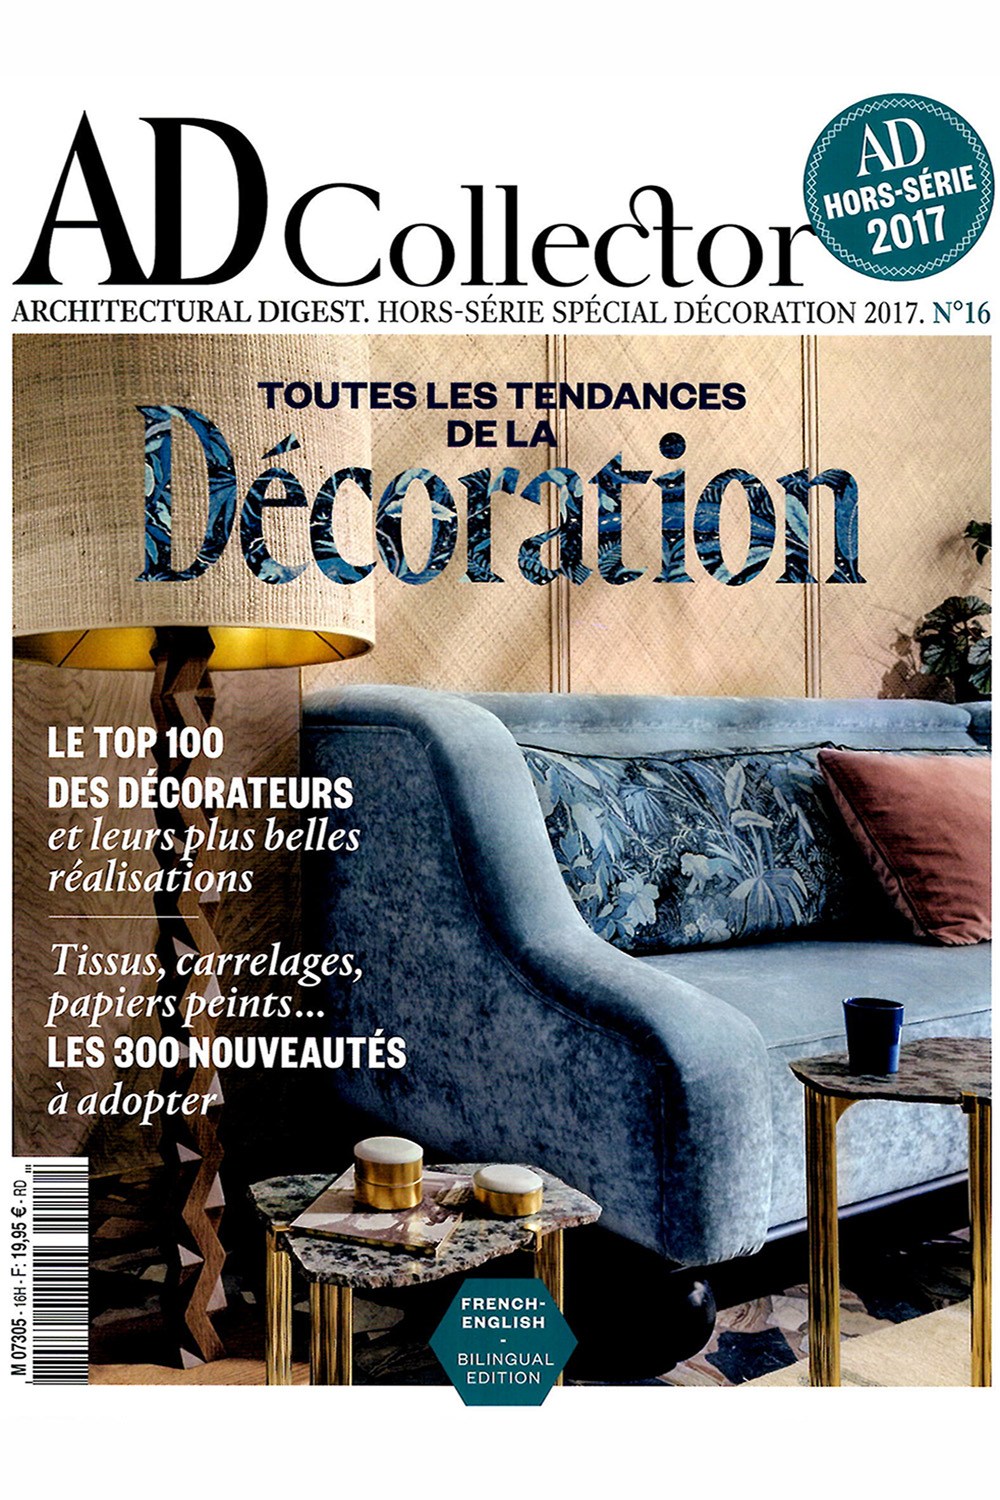 Our Kitayama sideboard in AD Collector Decoration n°16